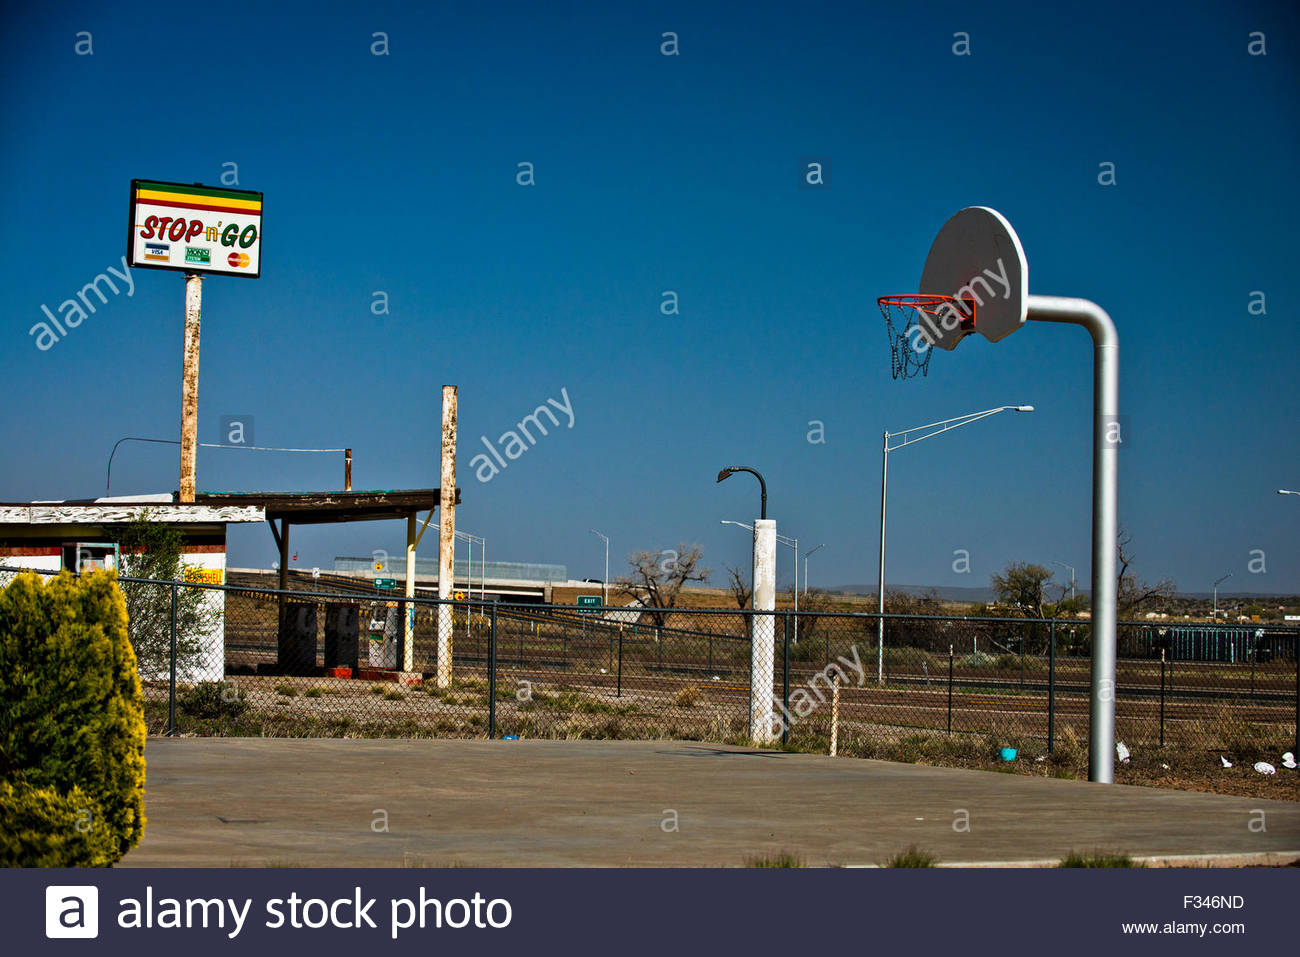 A deserted basketball court and gas station. - Stock Image